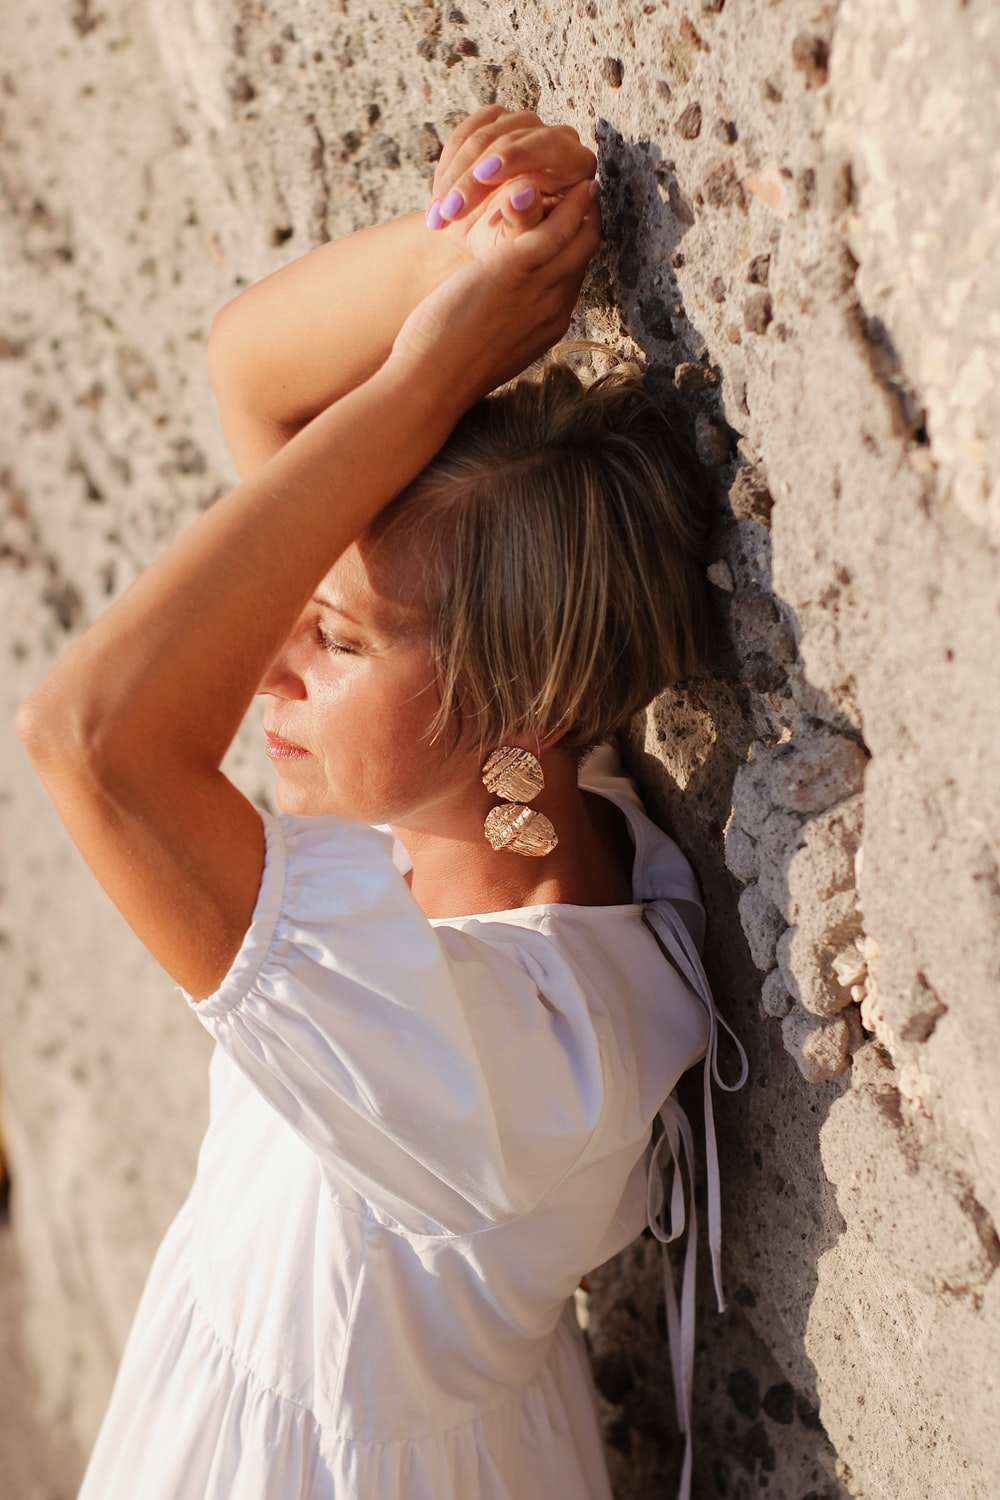 woman in white sleeveless dress leaning on brown rock during daytime